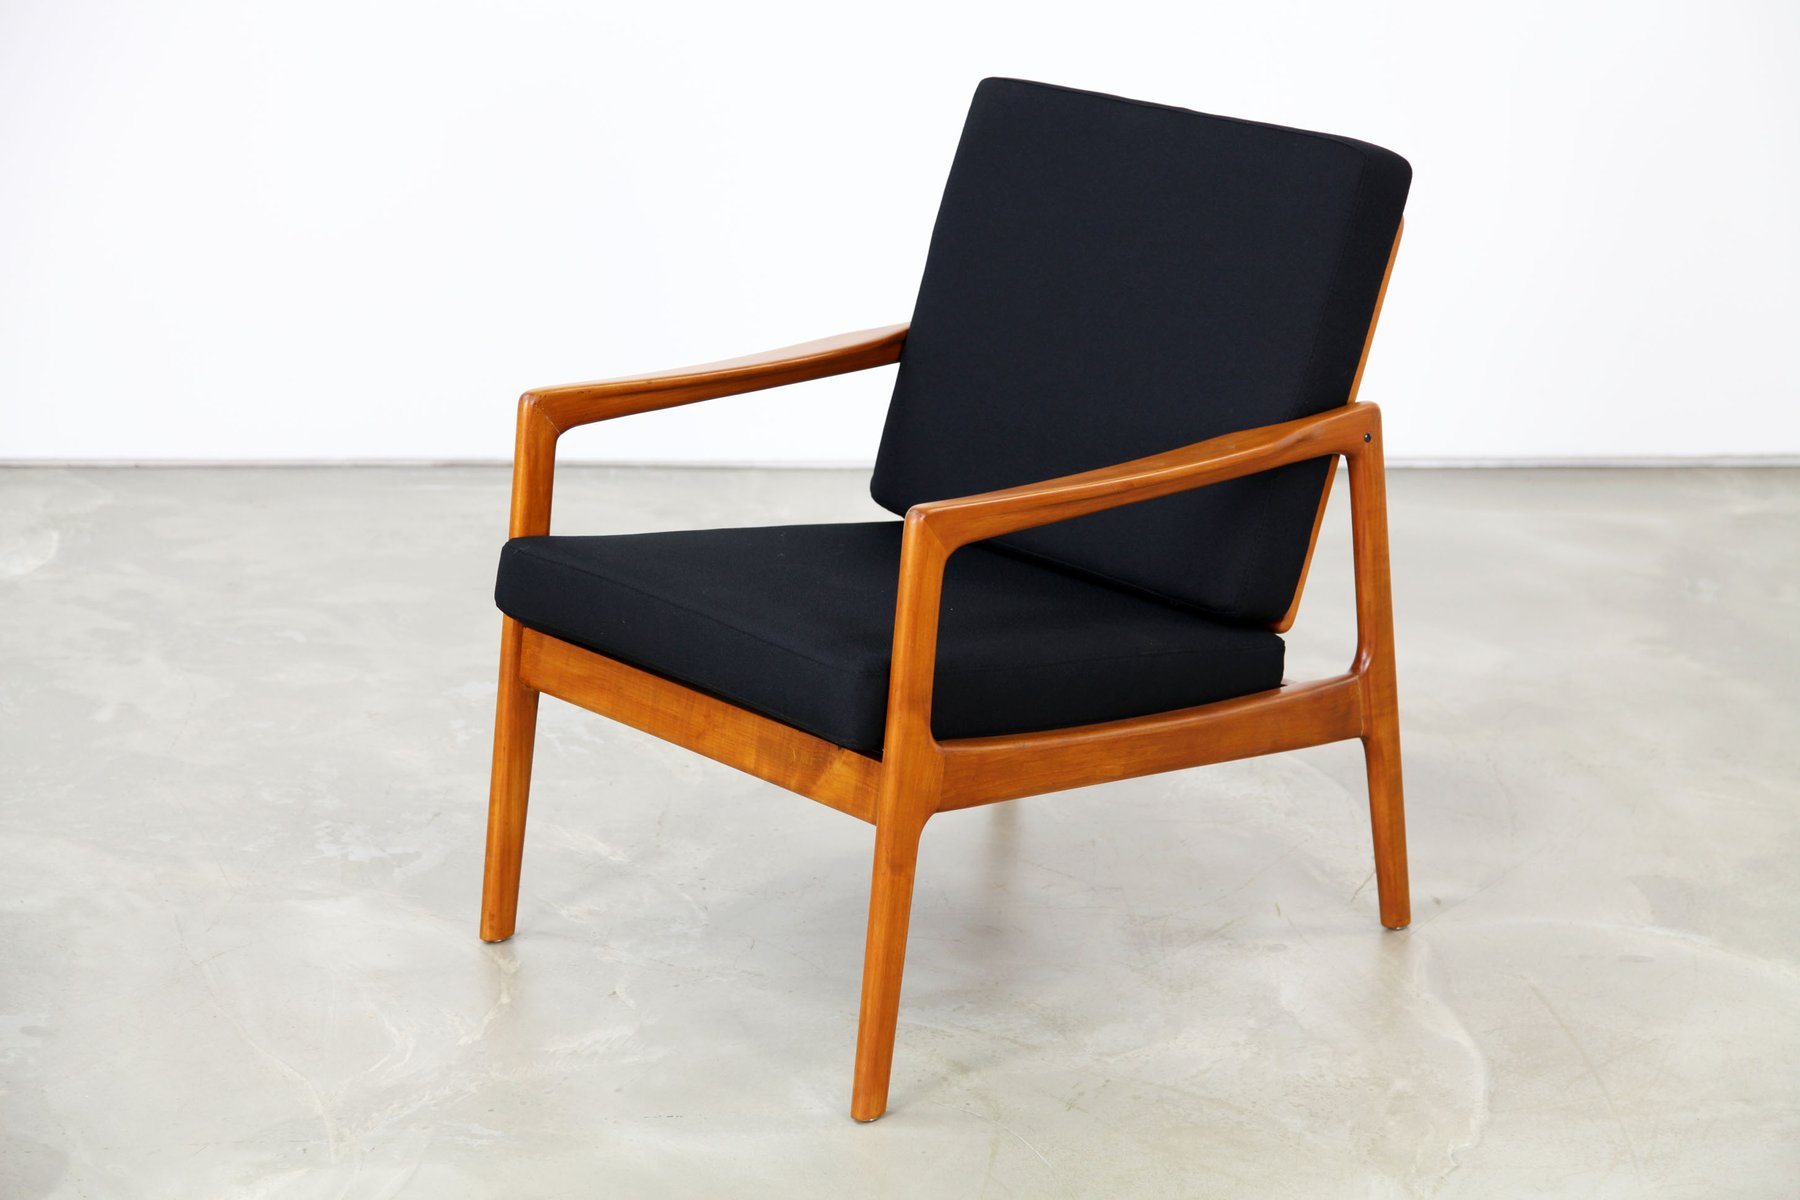 danish modern easy chair 1960s for sale at pamono. Black Bedroom Furniture Sets. Home Design Ideas